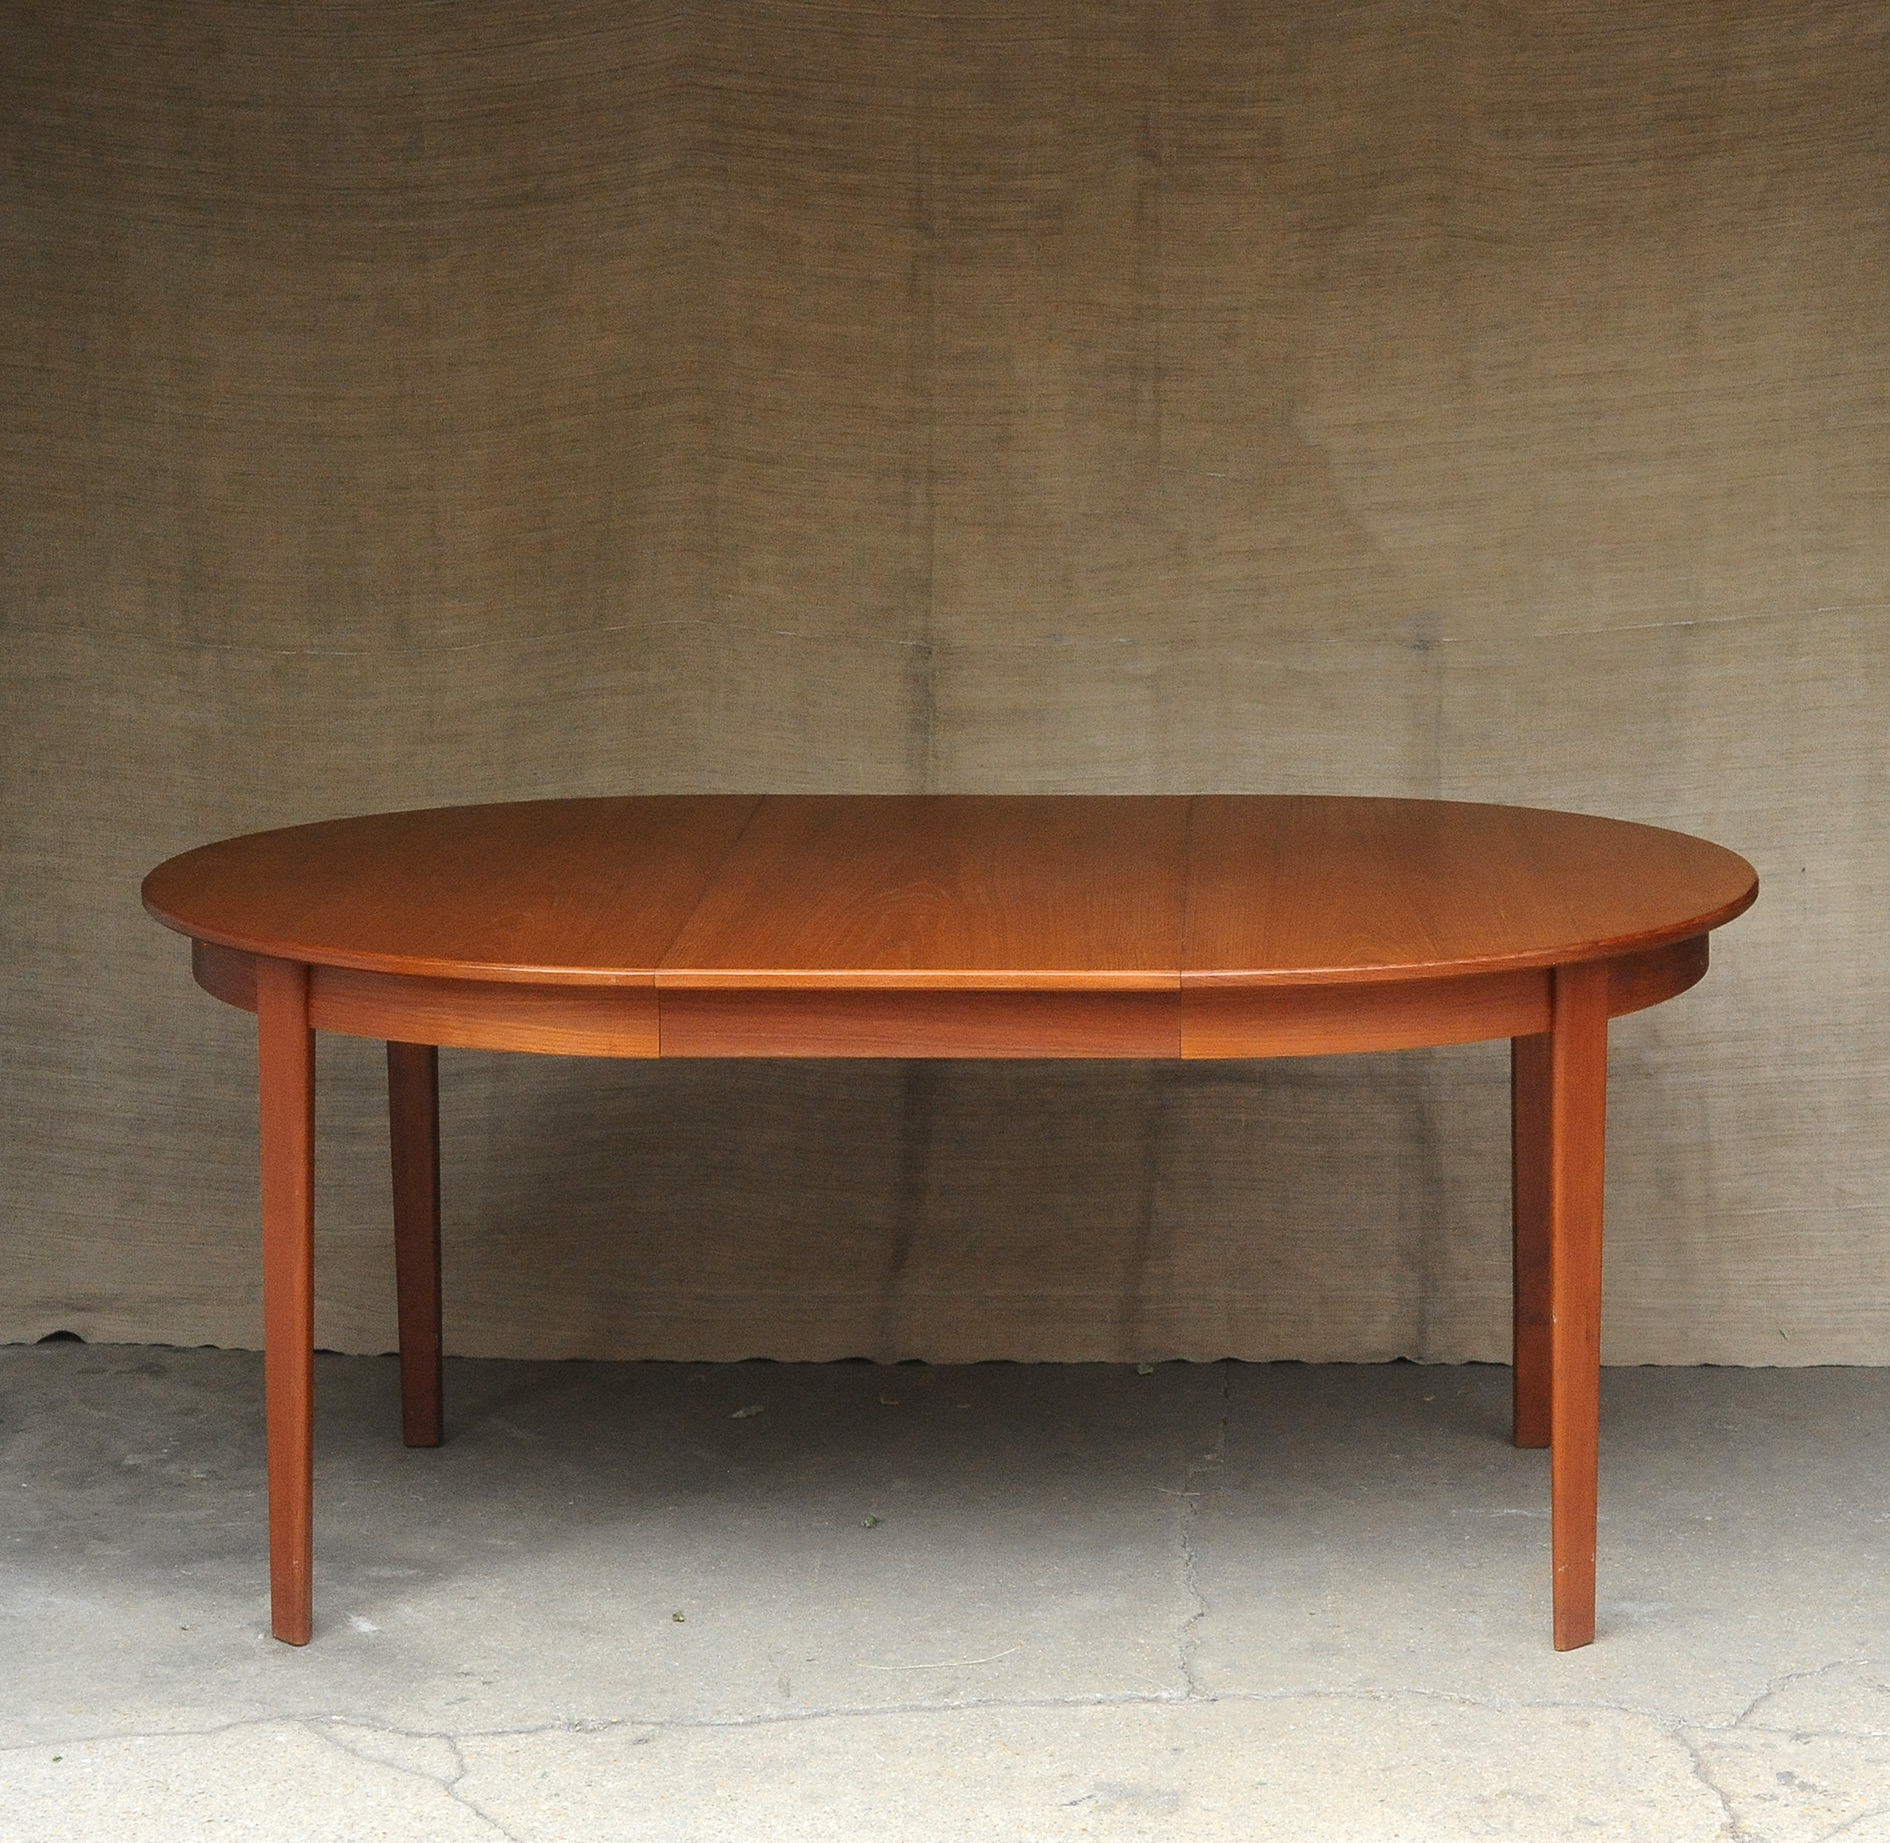 Table Manger Scandinave Table De Salle A Manger Scandinave Paul Bert Serpette